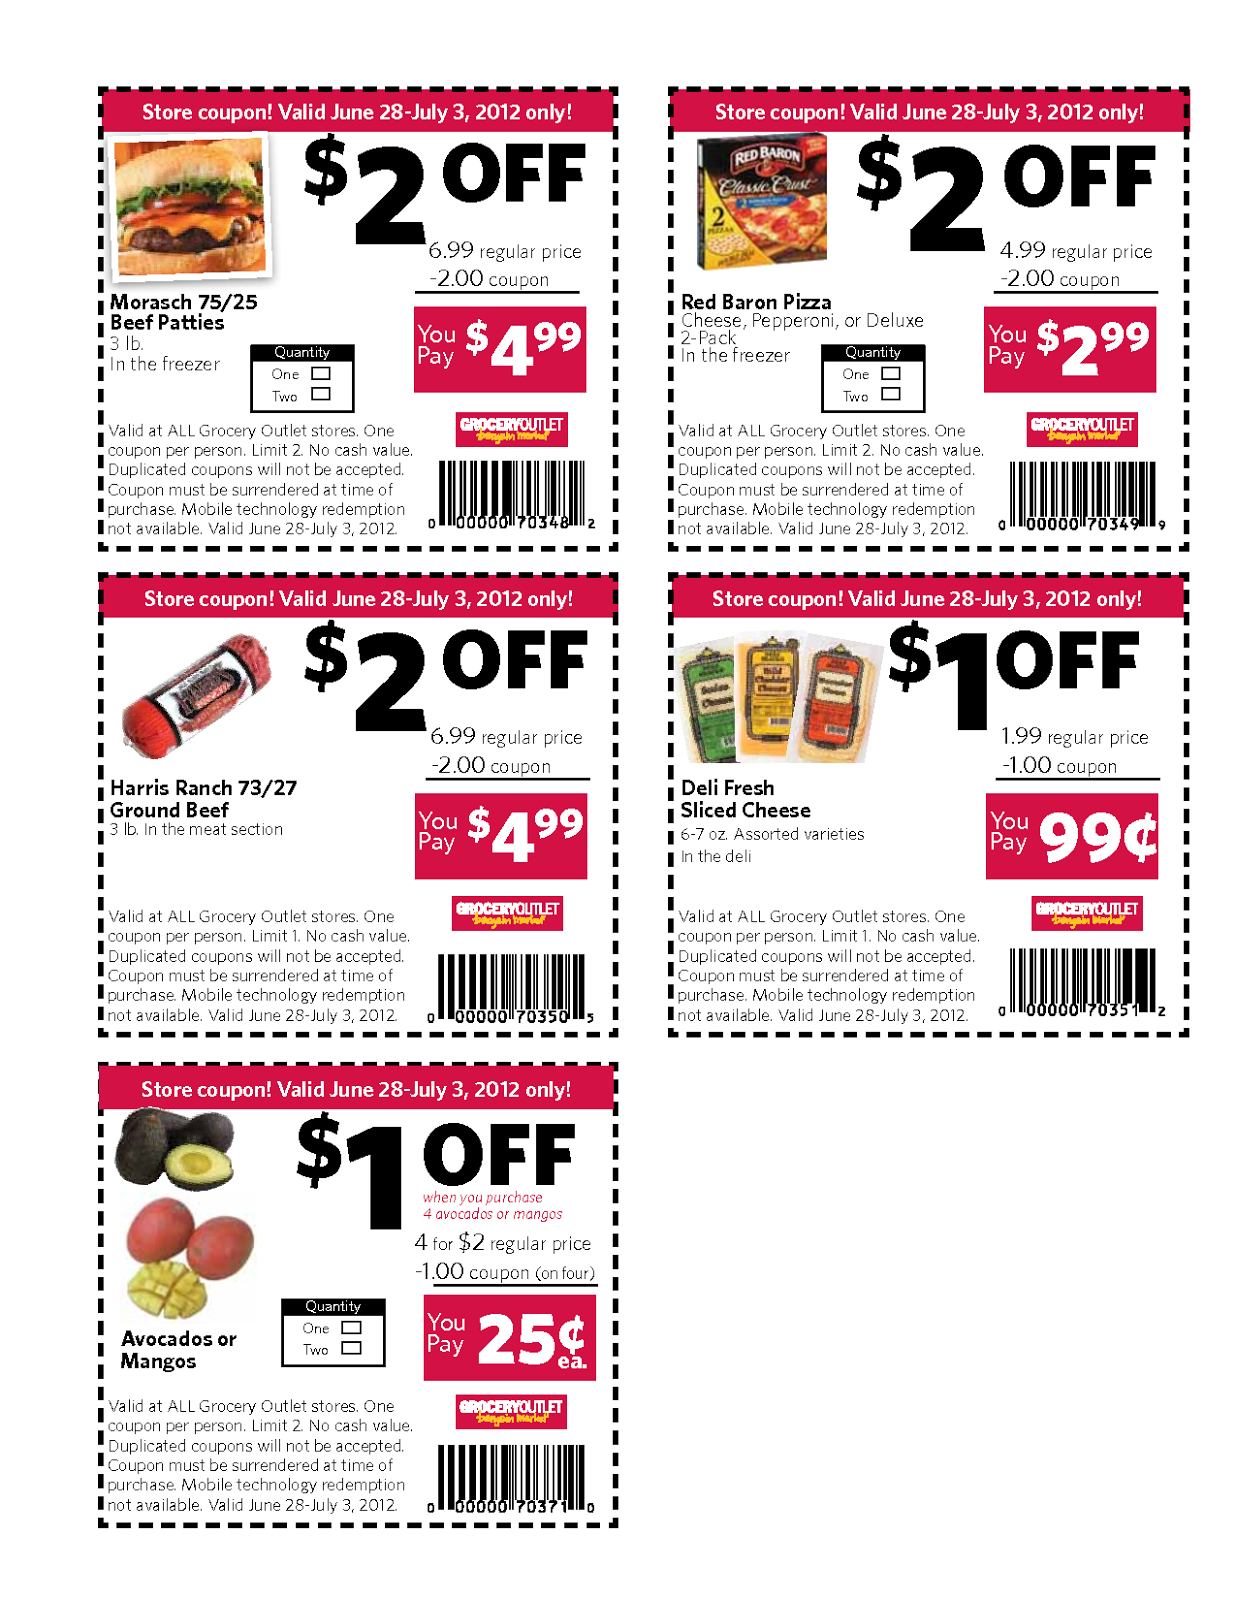 Free Coupons Printable Grocery : Pizza Hut Factoria - Free Online Printable Grocery Coupons Canada